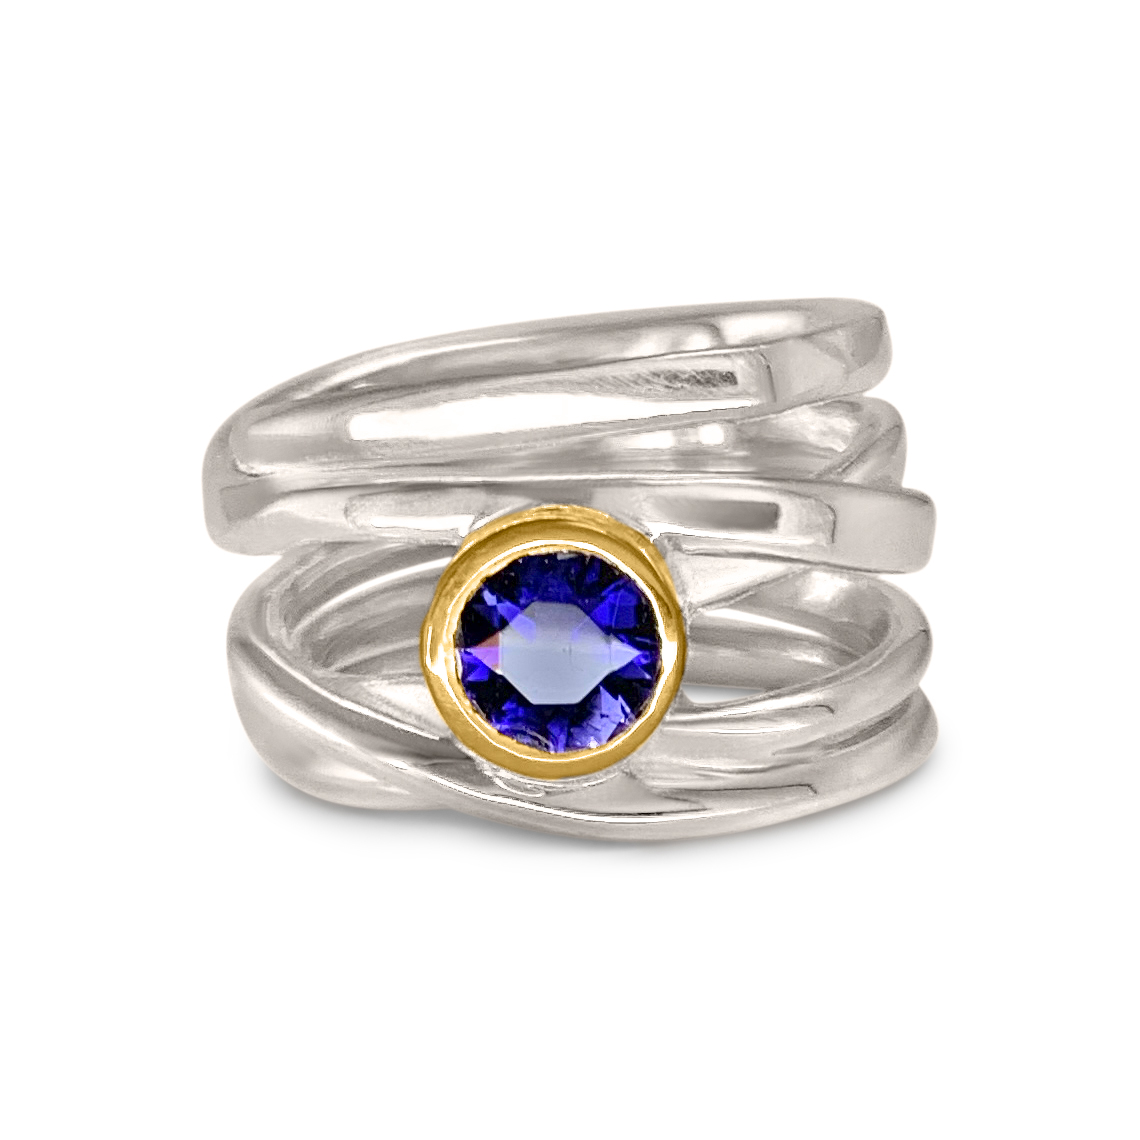 One-of-a-Kind #260 || Sterling Onefooter Ring with 6mm Iolite in 18k yellow gold bezel setting, Size 6